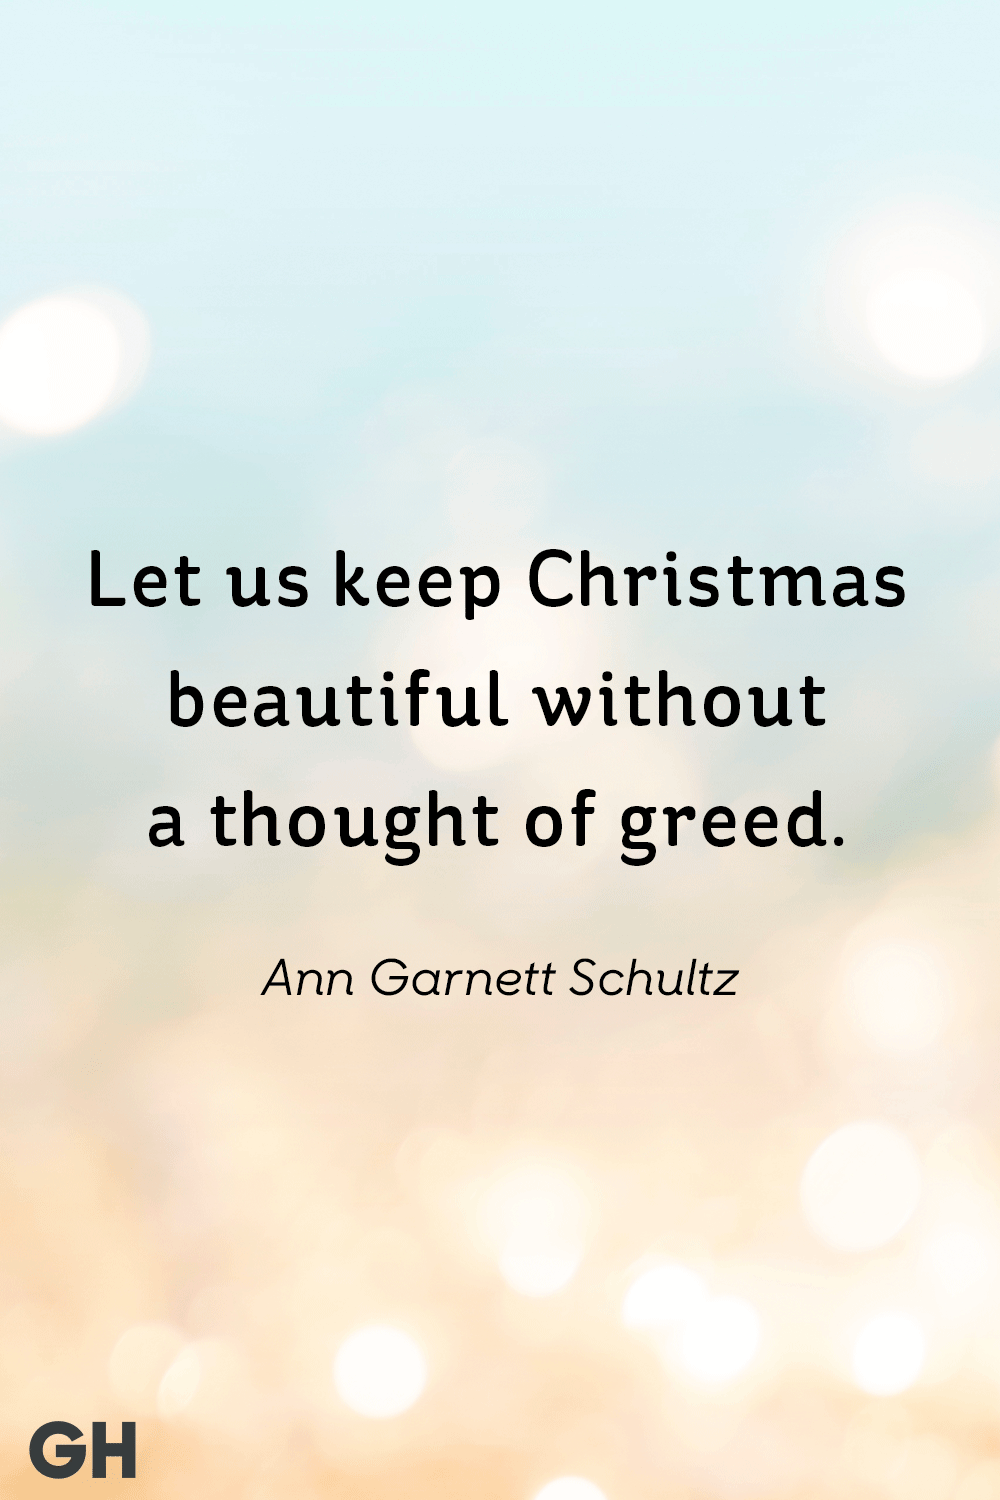 Ann Garnett Schultz Best Christmas Quotes